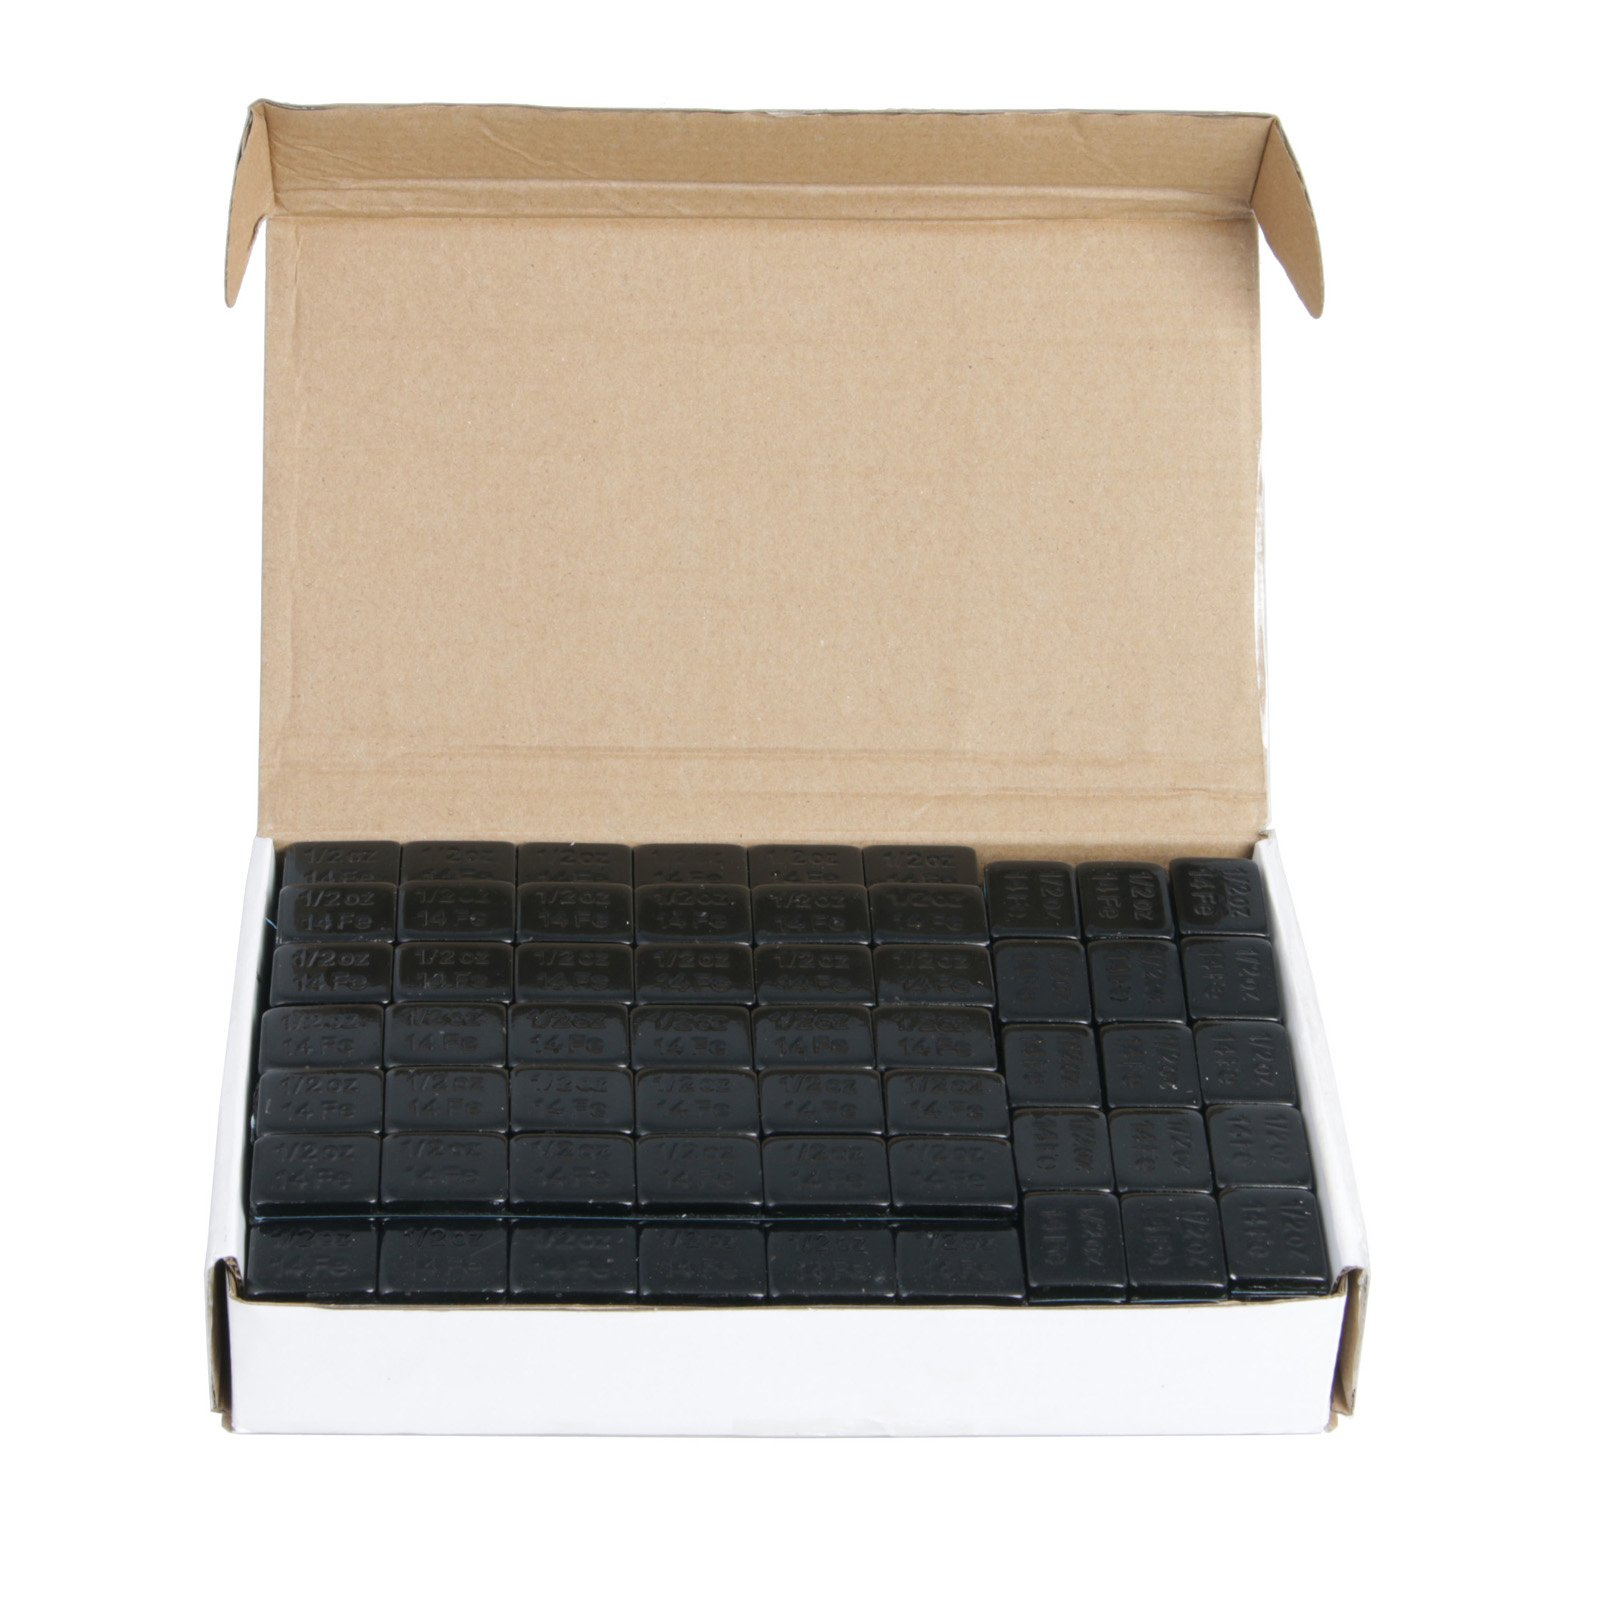 (1) Box of 1/2 ounce (0.5oz) Black, Adhesive, Stick On Wheel Weights (Low Profile) - Zinc Plated (Lead Free) - 204oz (~13 lbs) total, 68 total 3-oz strips, 408 total pieces by Precision European Motorwerks (Image #1)